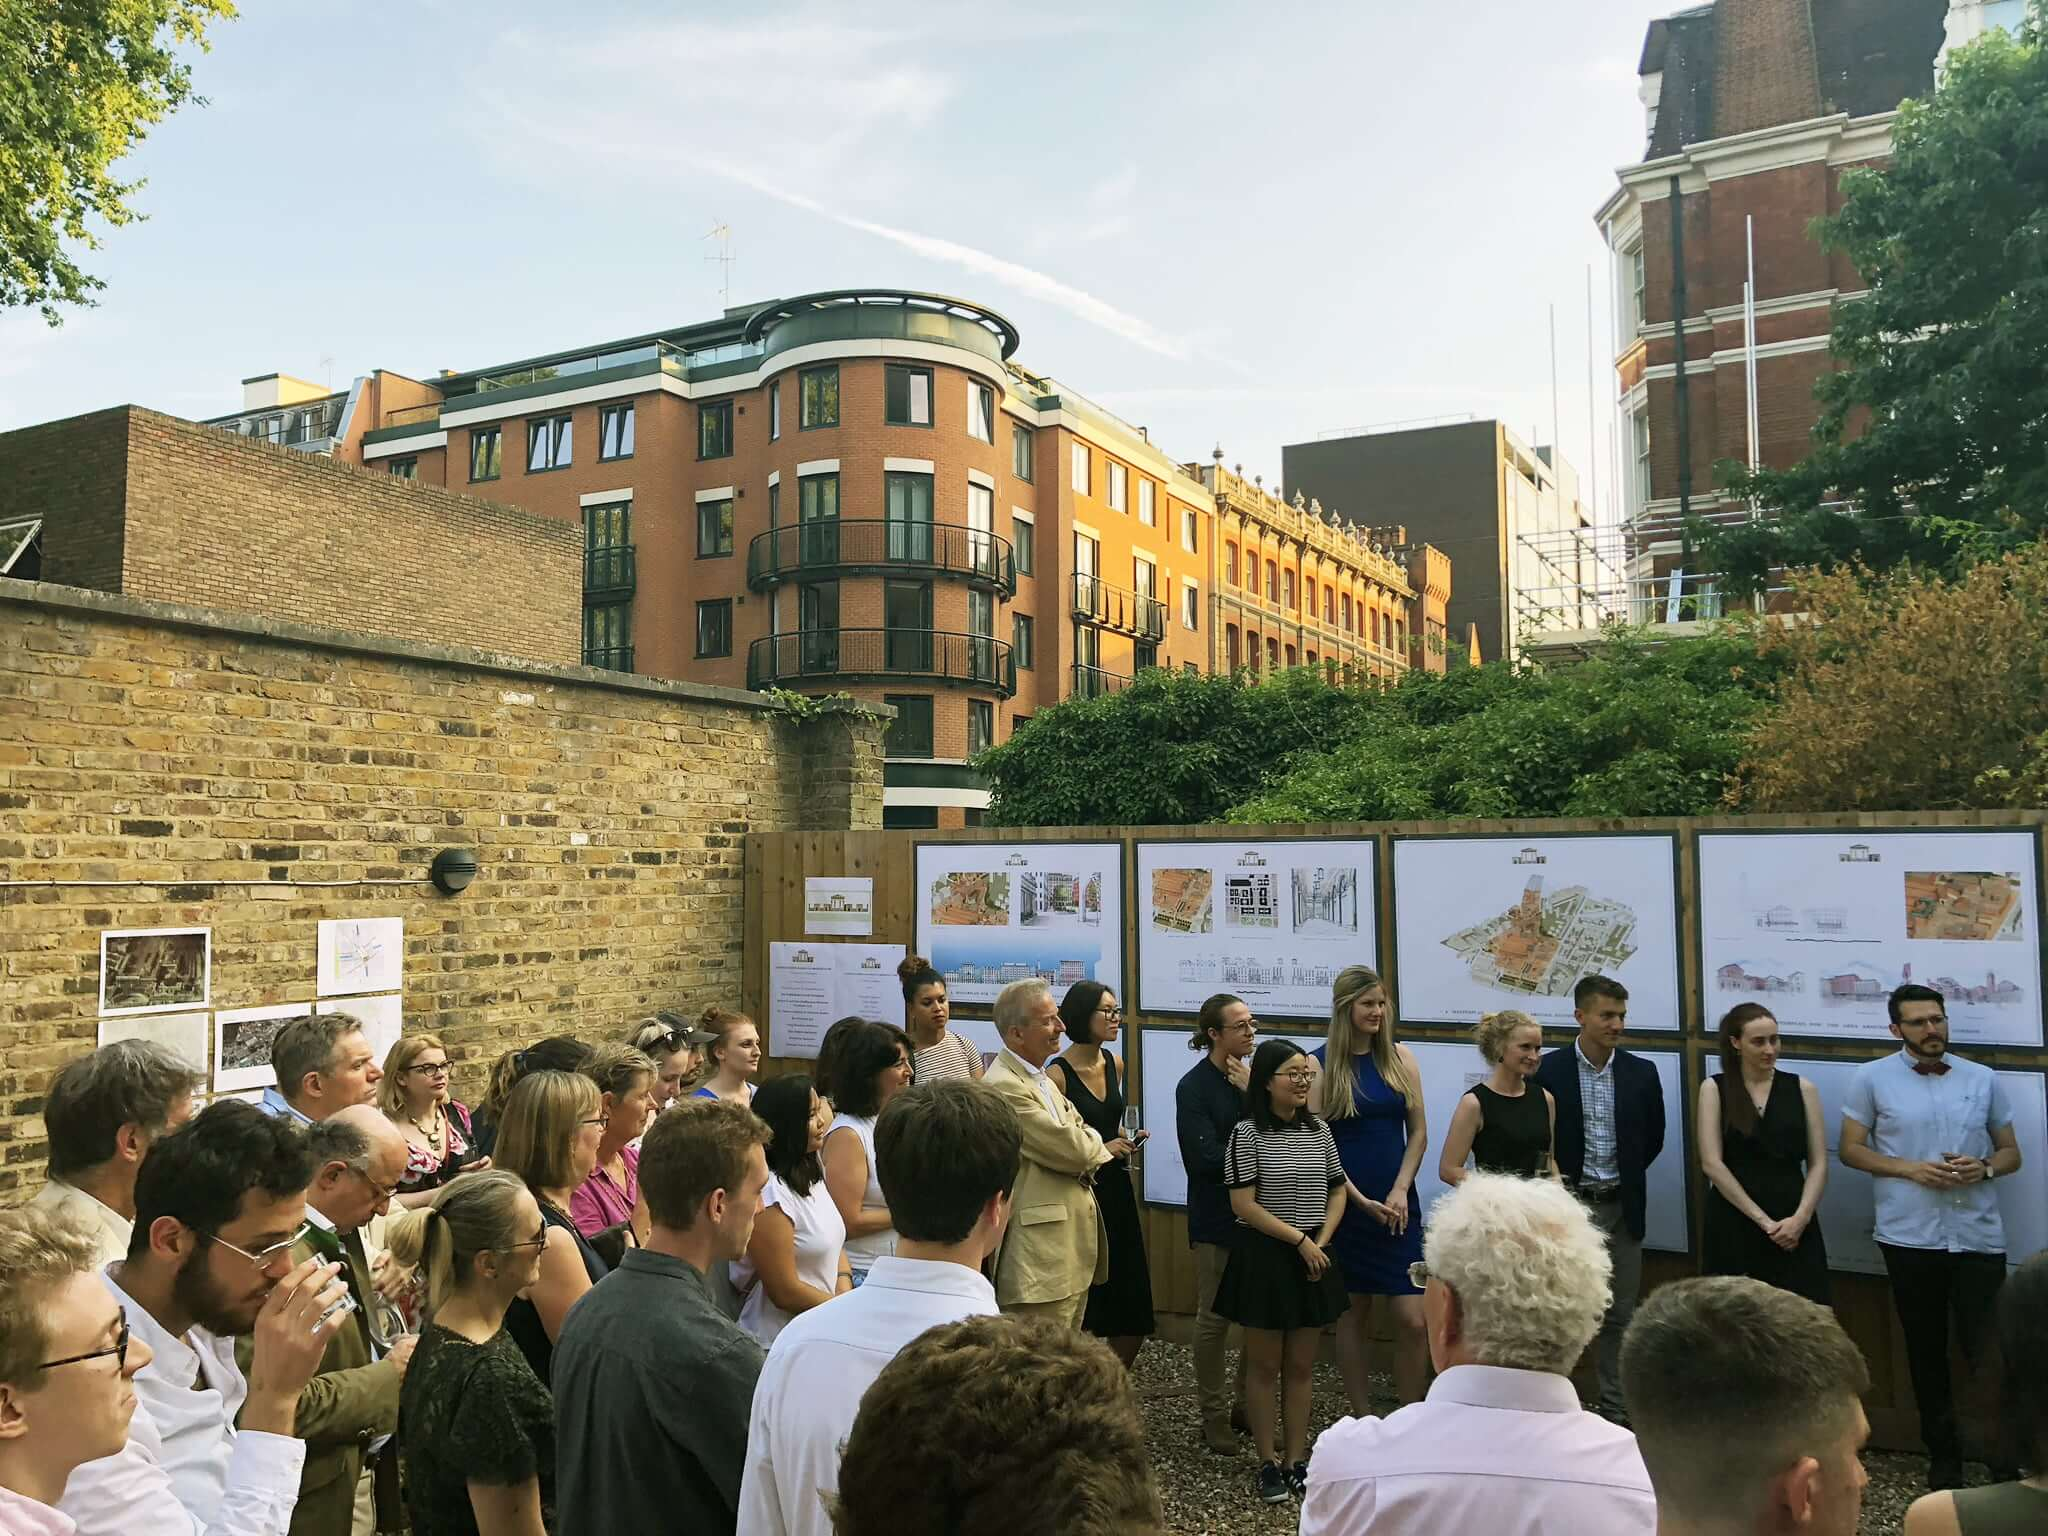 Exhibition and presentation of the scheme to the local community